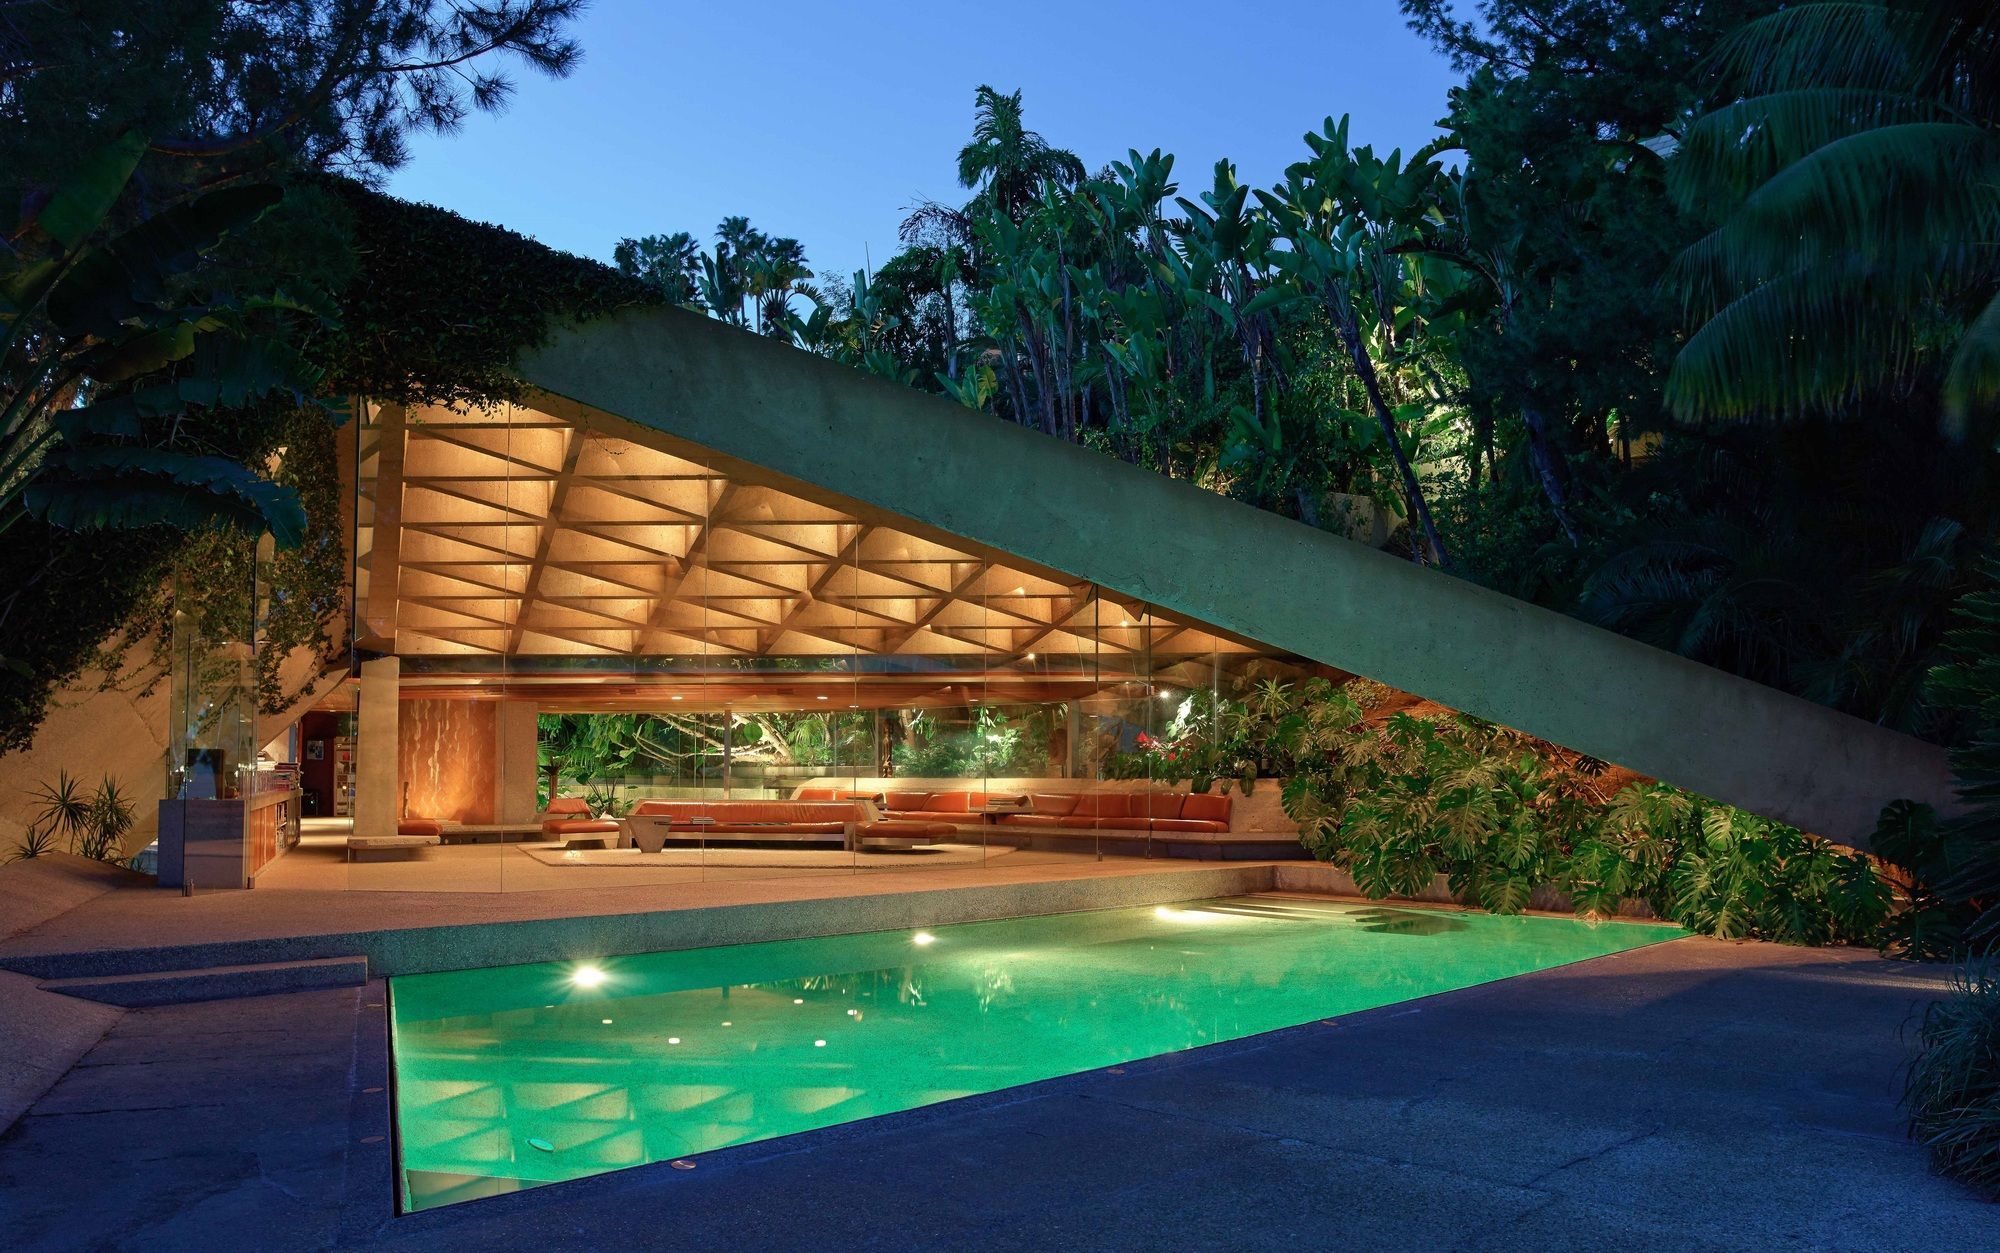 Gallery Of John Lautner S Goldstein House Gifted To Lacma By Its Owner 1 James Goldstein House John Lautner Famous Houses